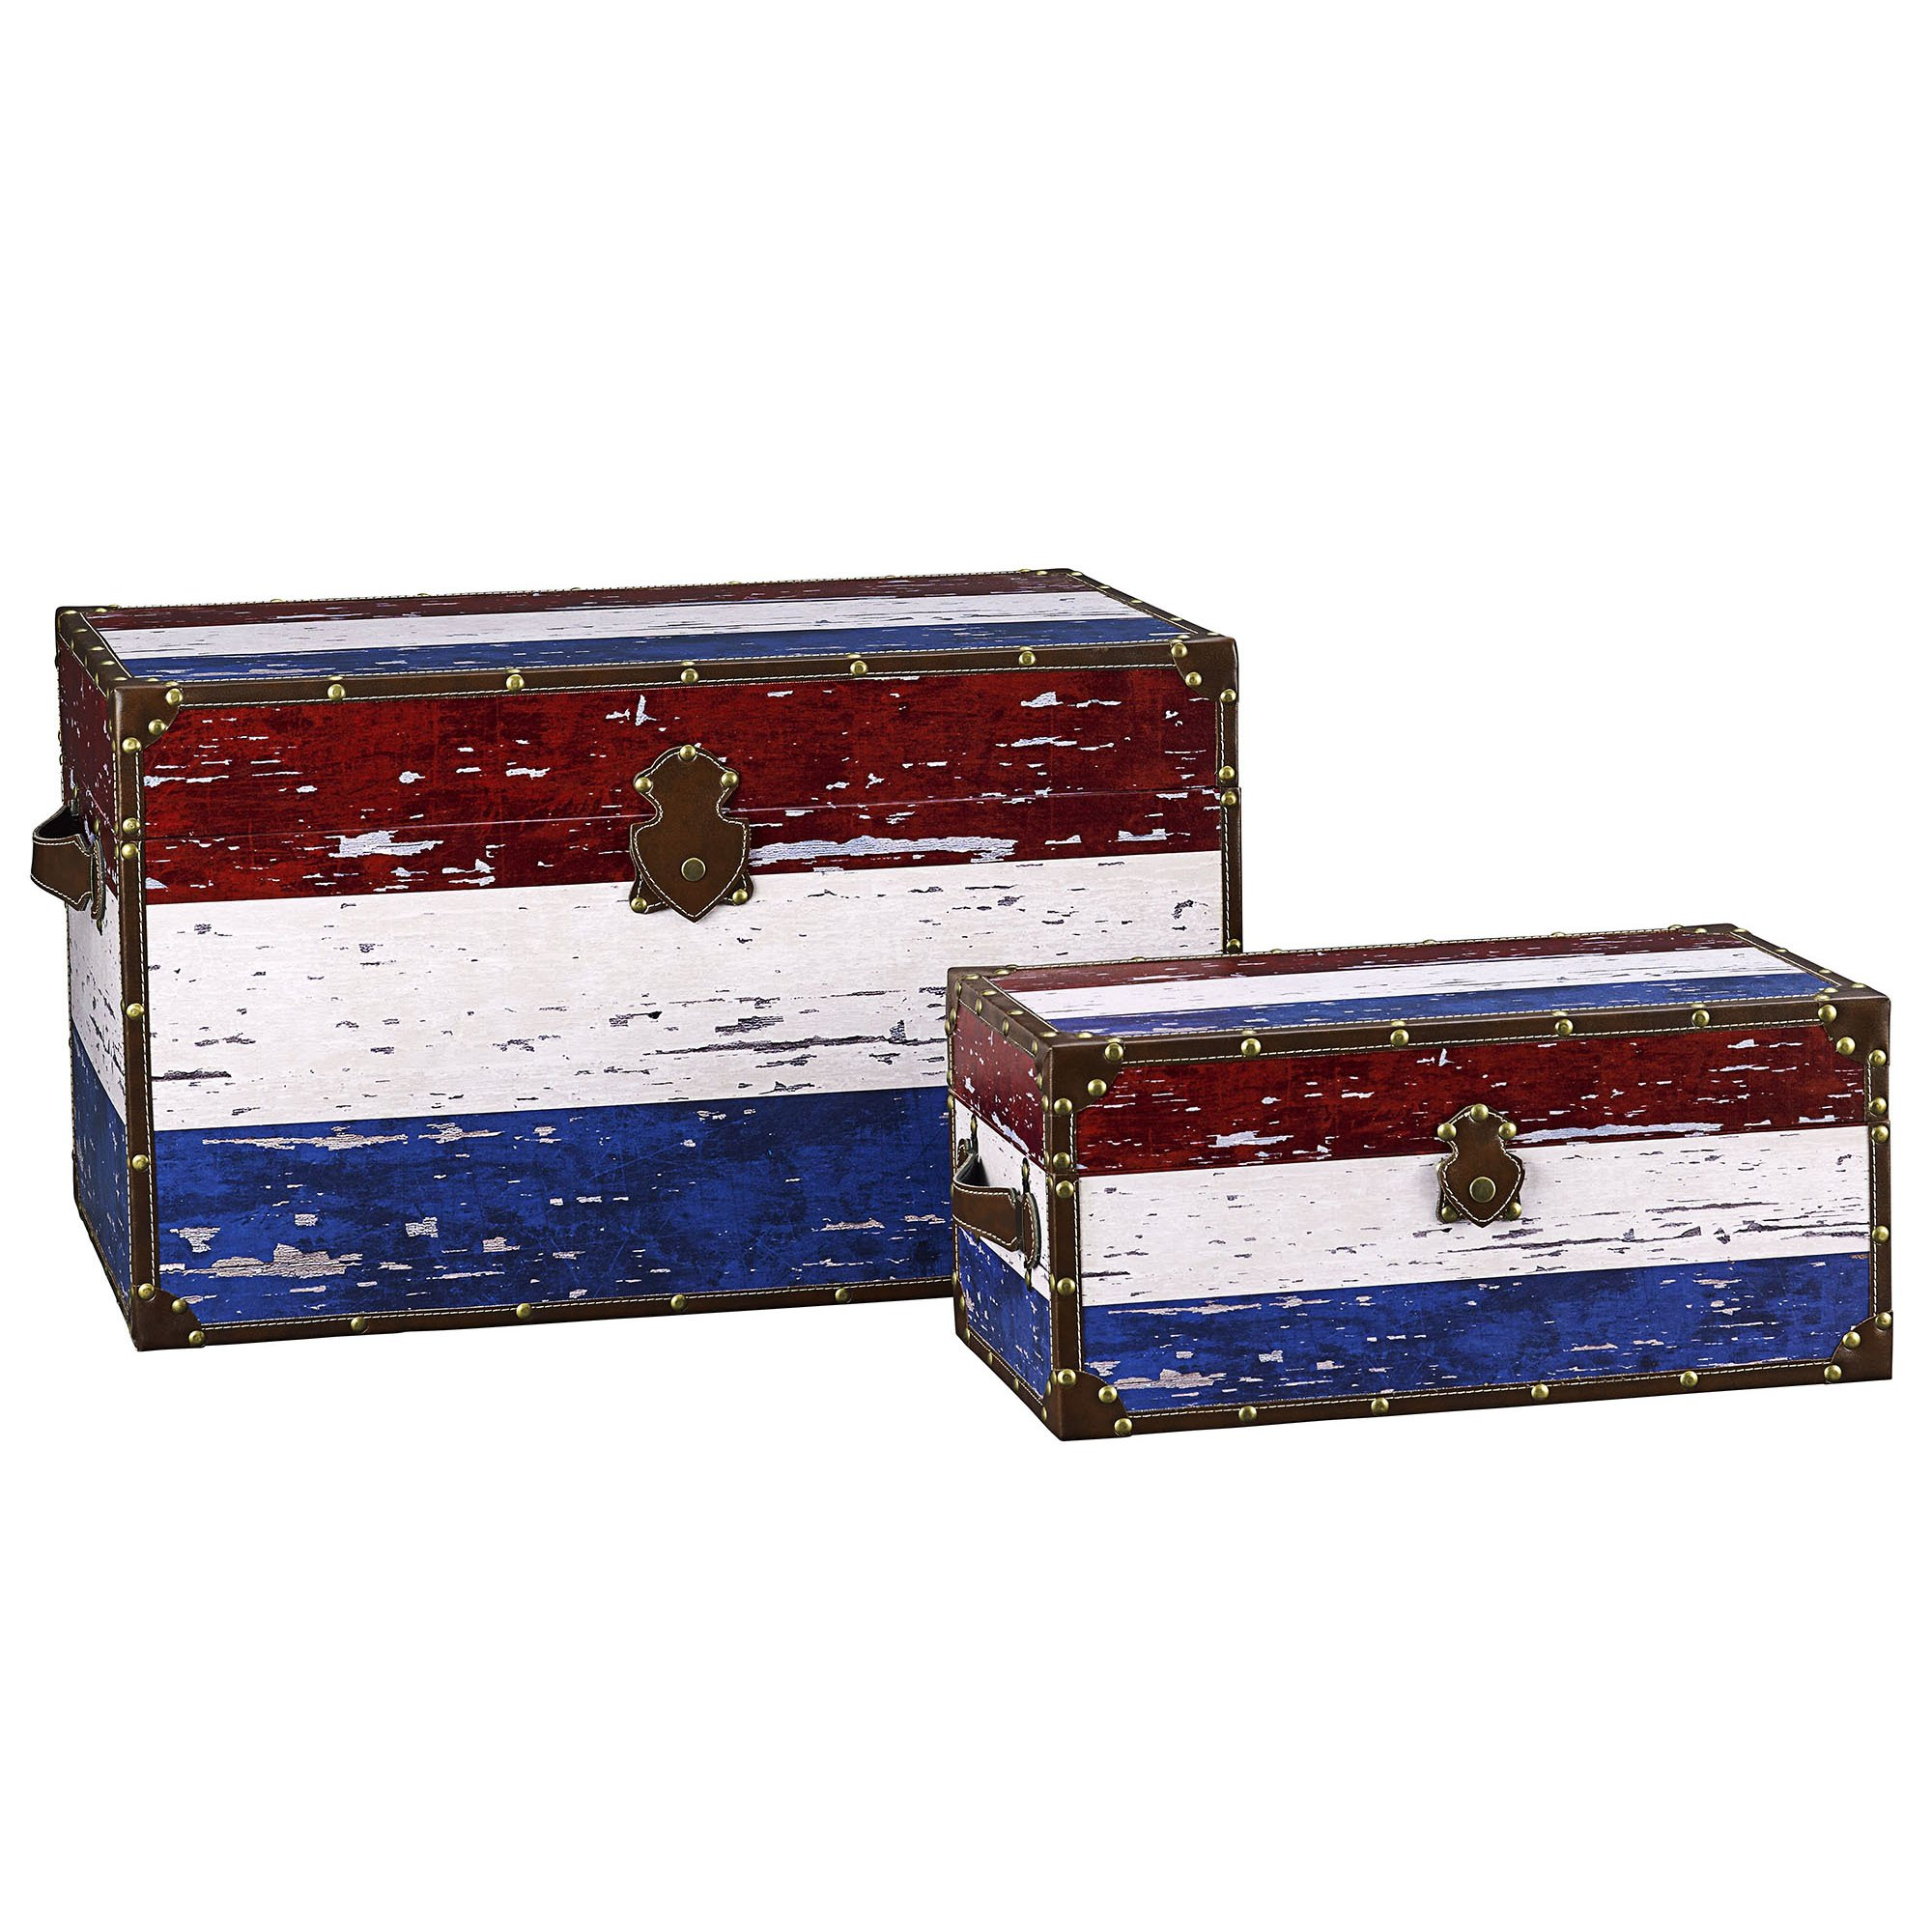 Household Essentials Decorative Storage Trunk, Red, White and Blue, Jumbo and Medium, Set of 2